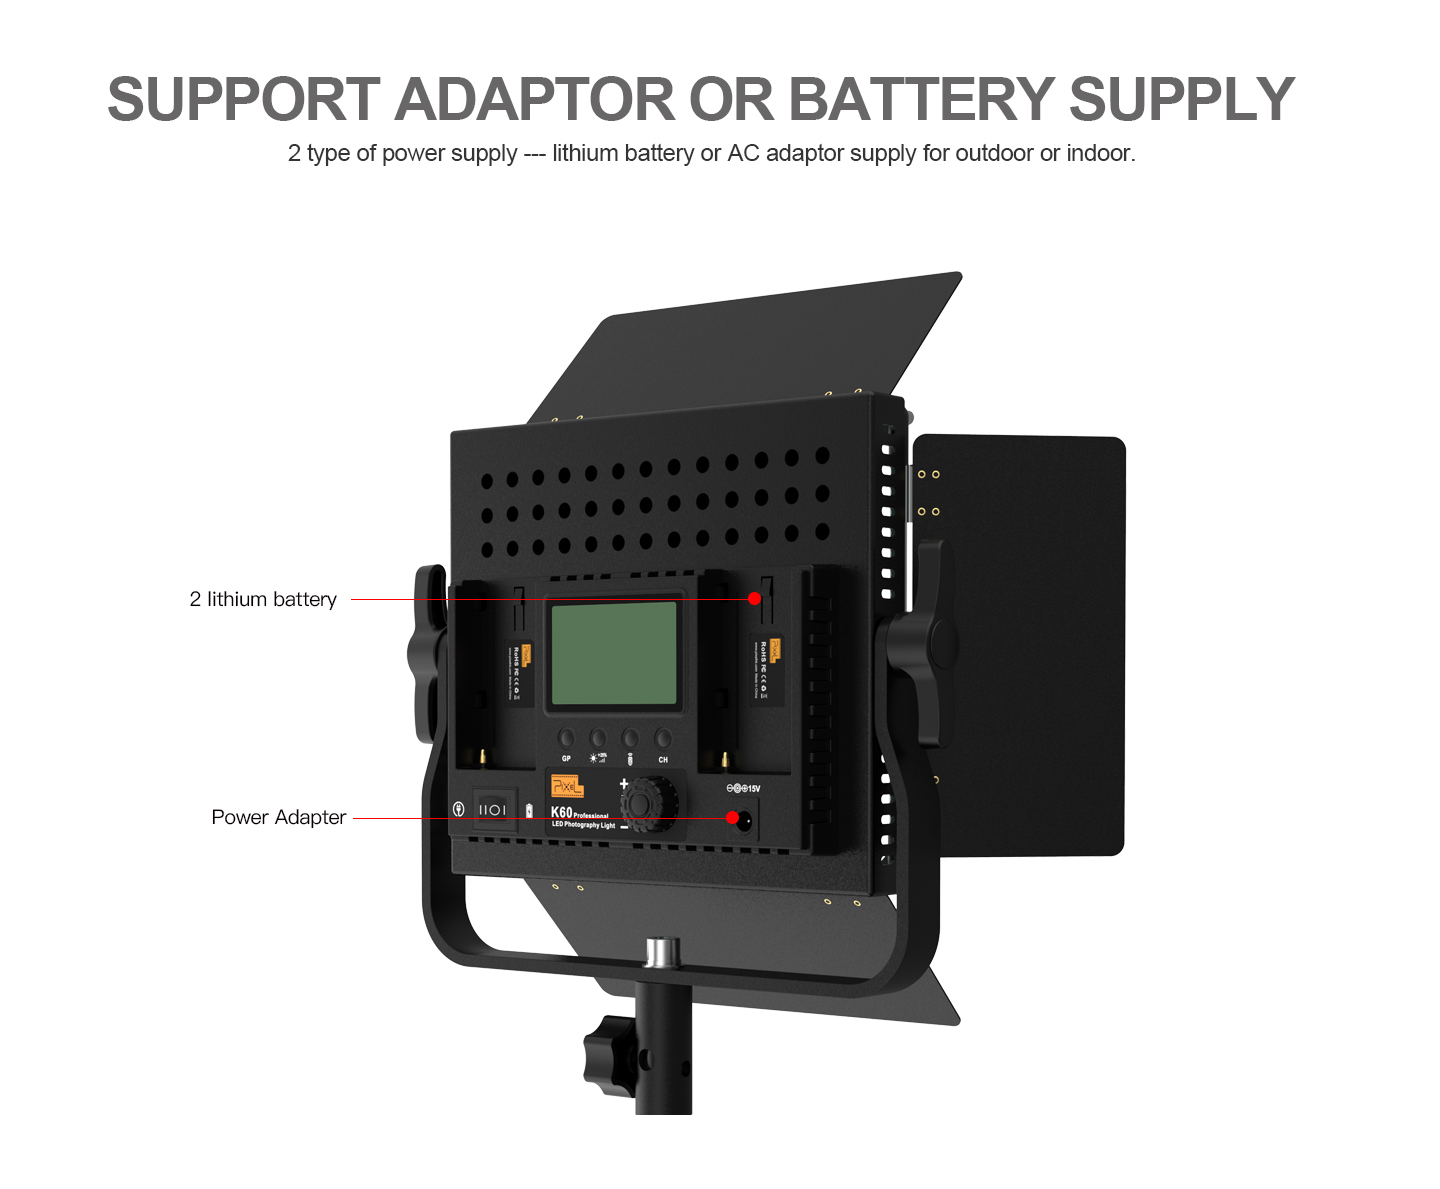 SUPPORT ADAPTOR OR BATTERY SUPPLY